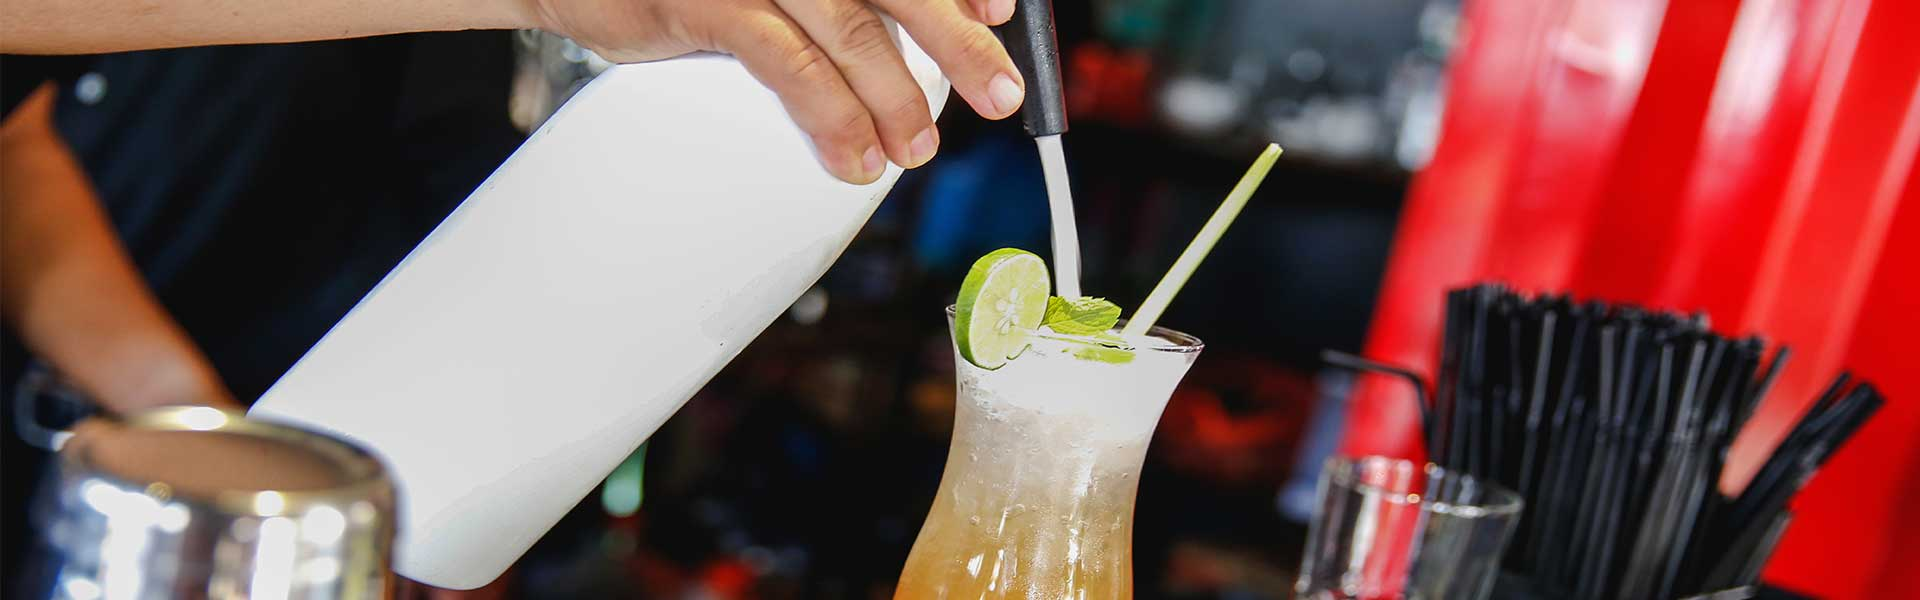 https://thefrenchgourmet.com/wp-content/uploads/2018/02/catered-bar-pouring-cocktail.jpg